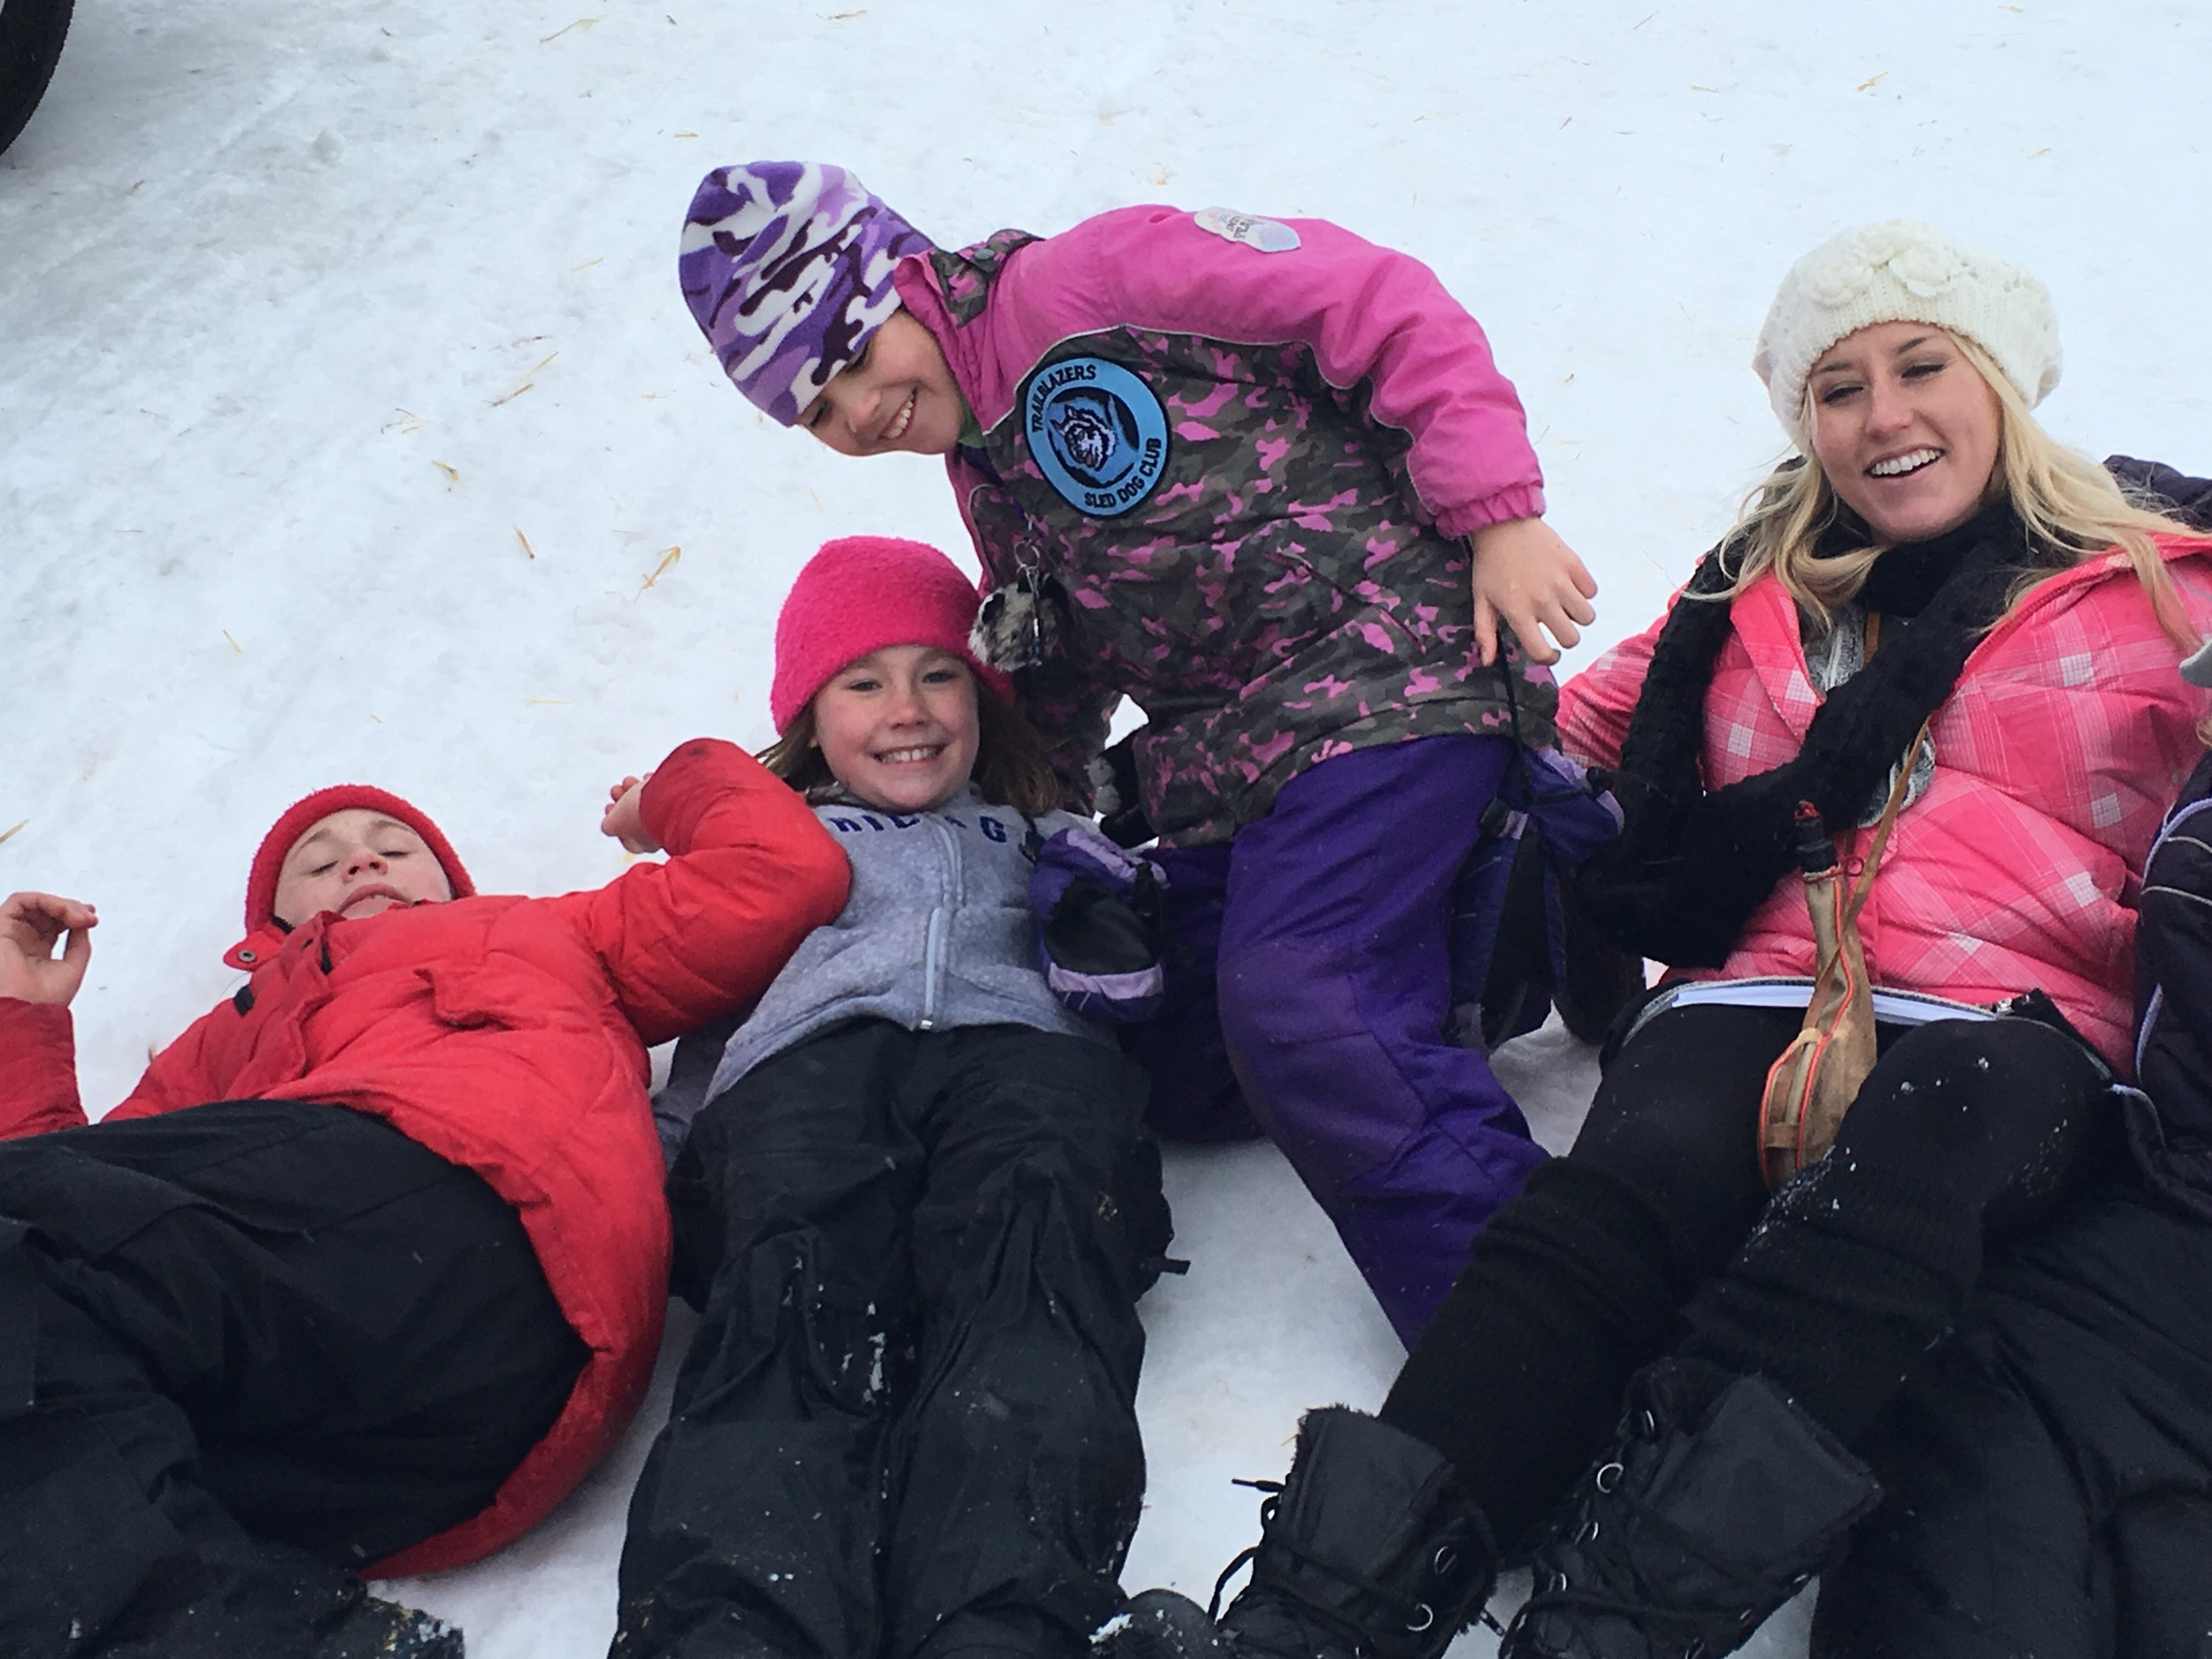 Fun in the snow at the dog sled races